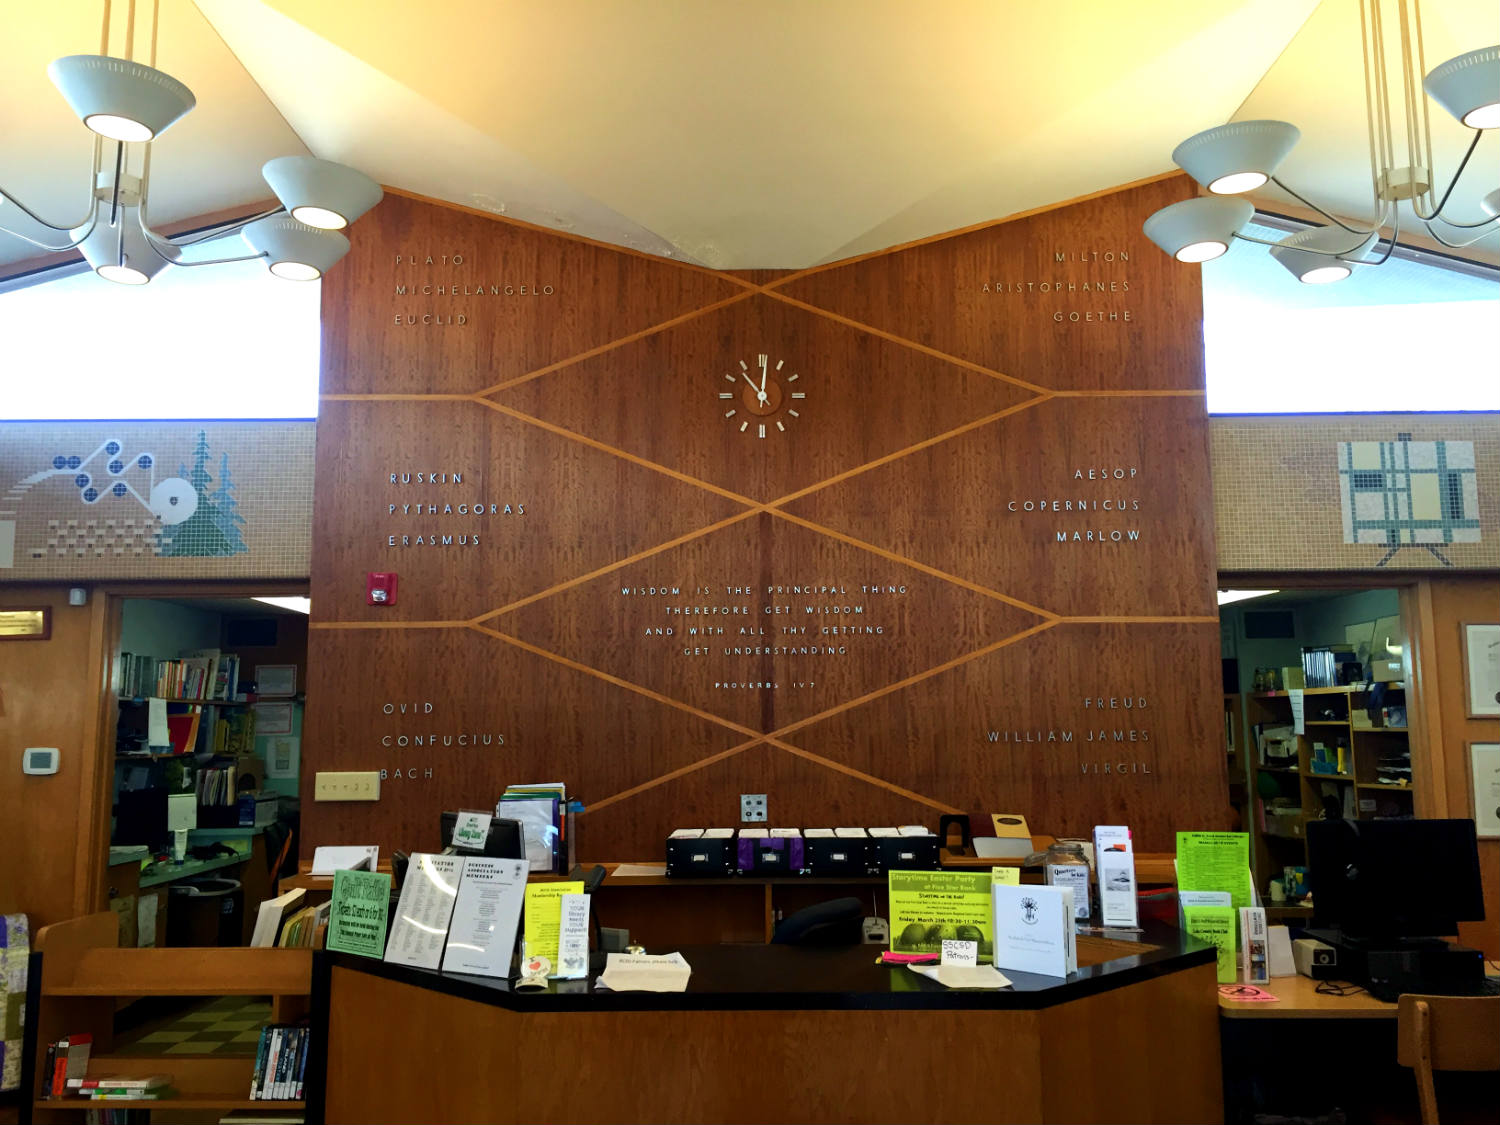 Reception Desk Inside The Edith B. Ford Memorial Library in Ovid, New York